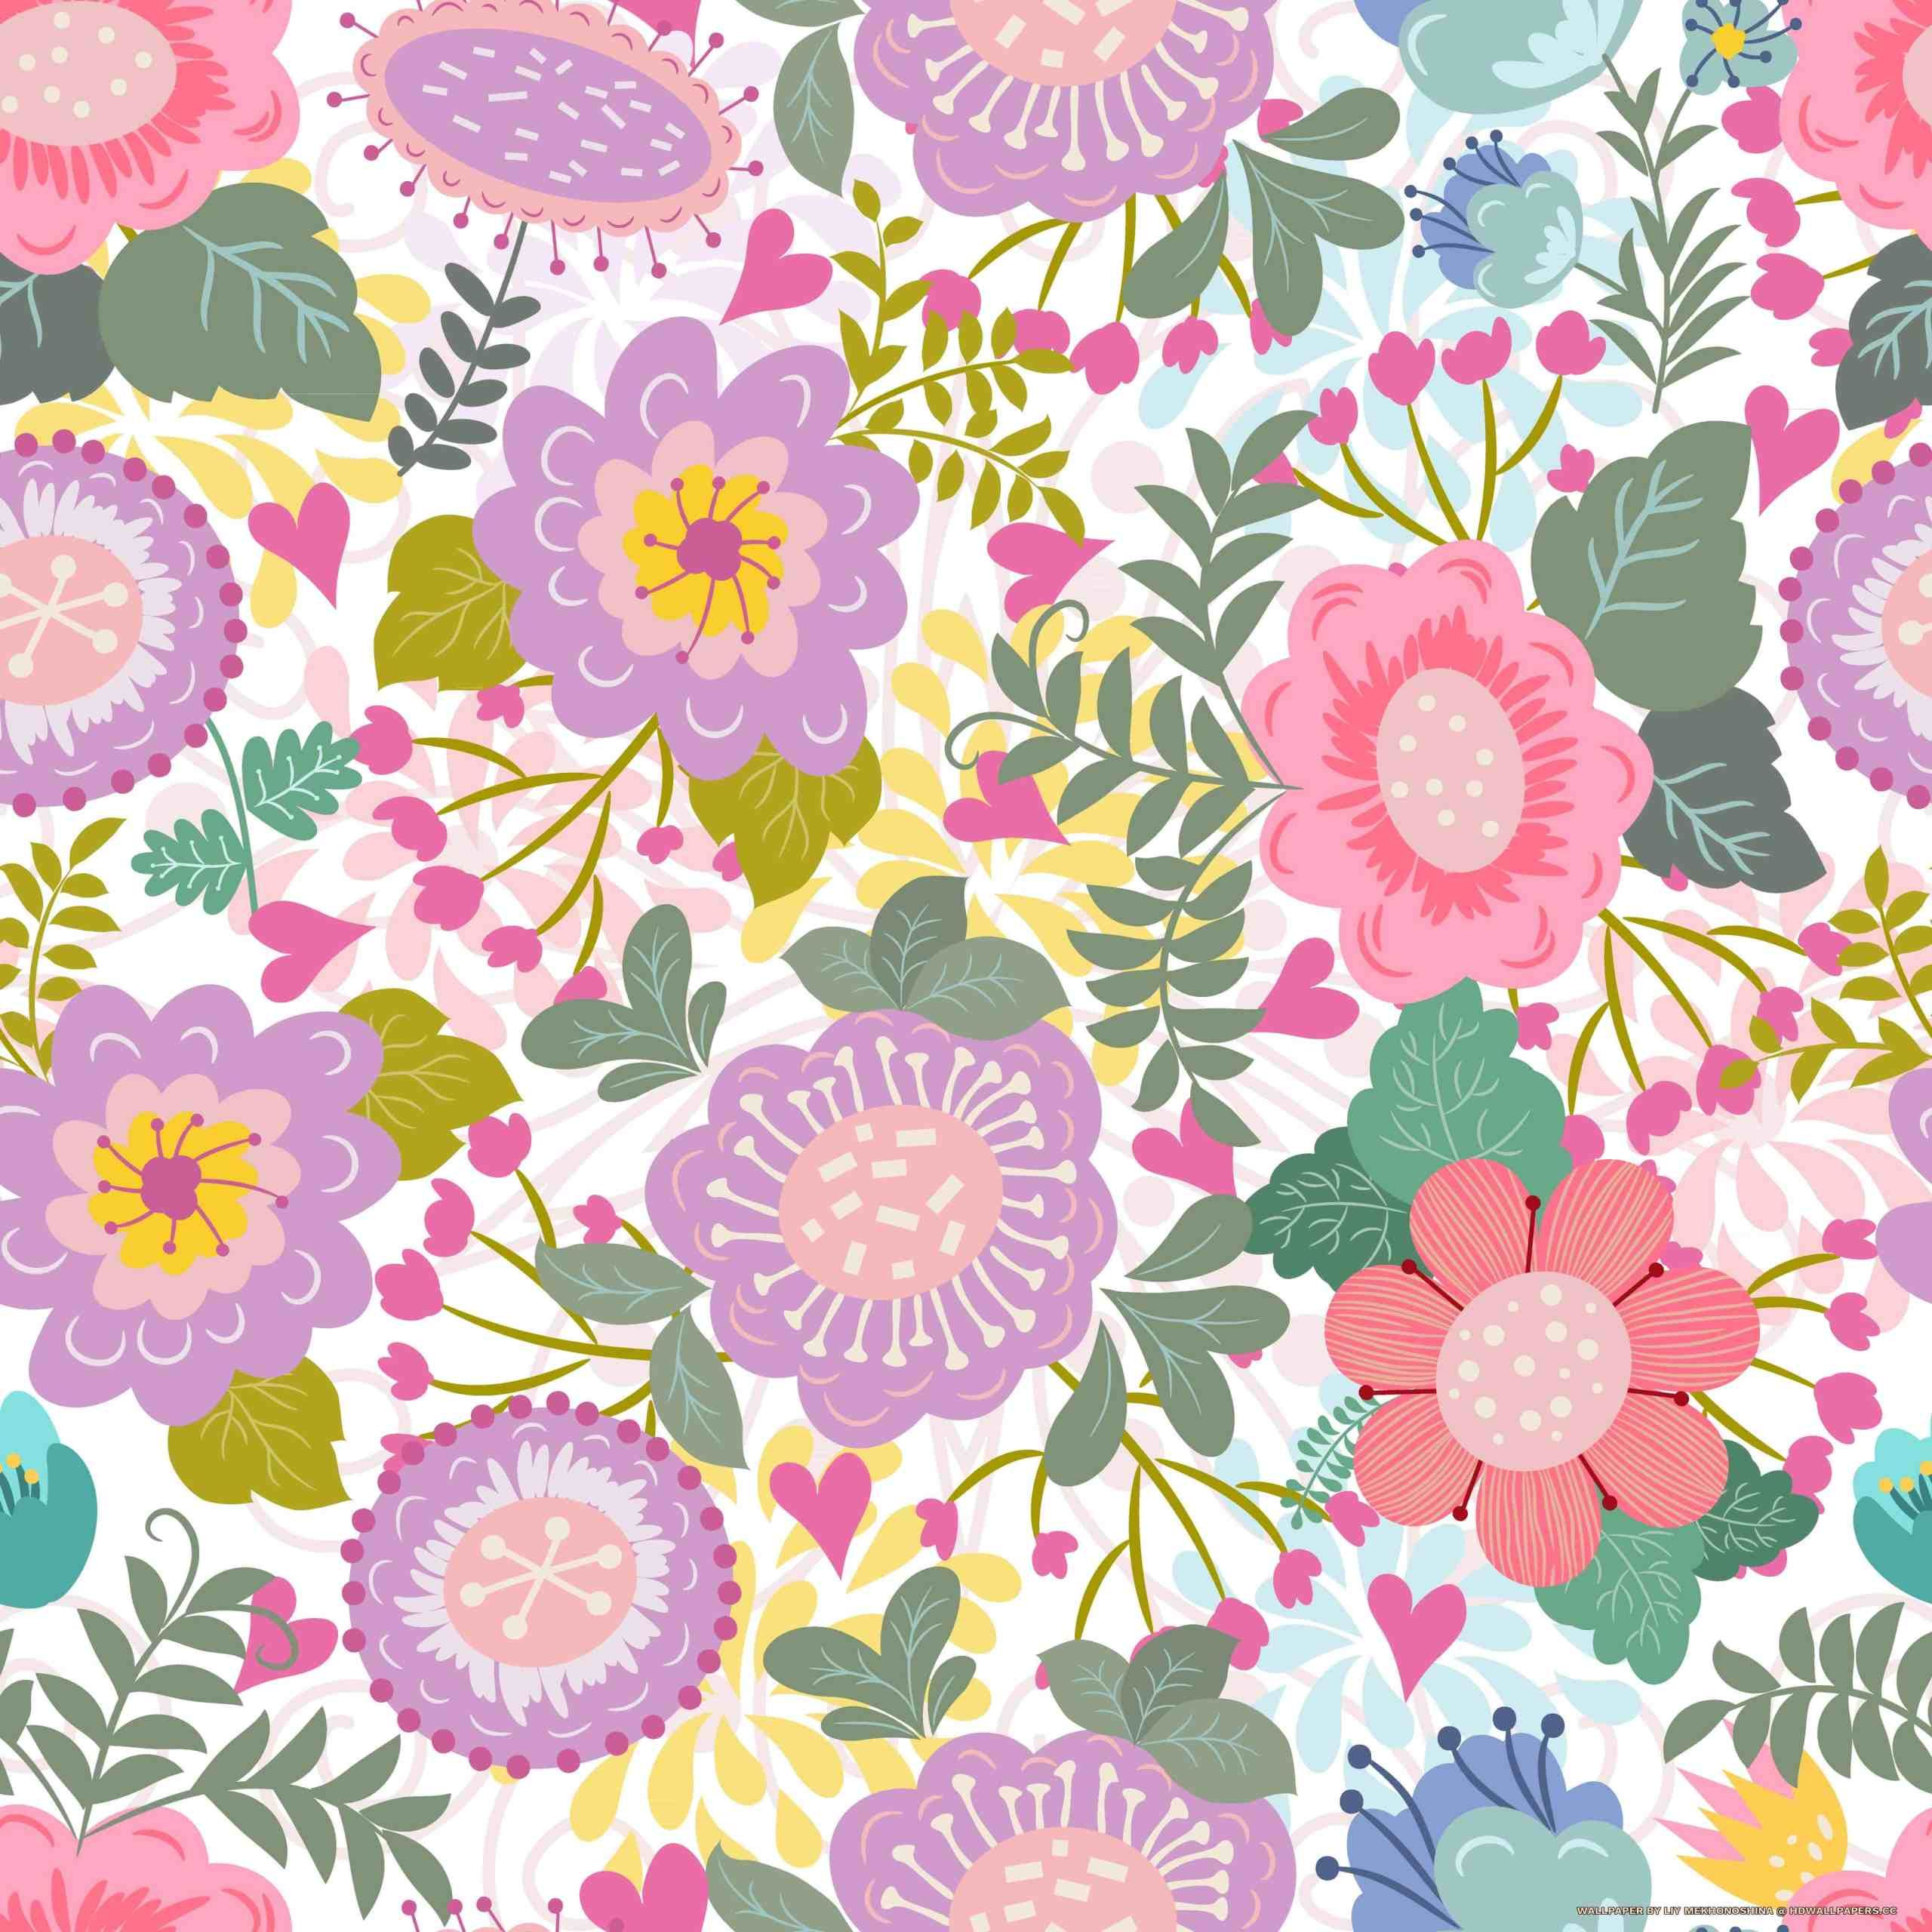 Floral seamless pattern - HD Wallpapers